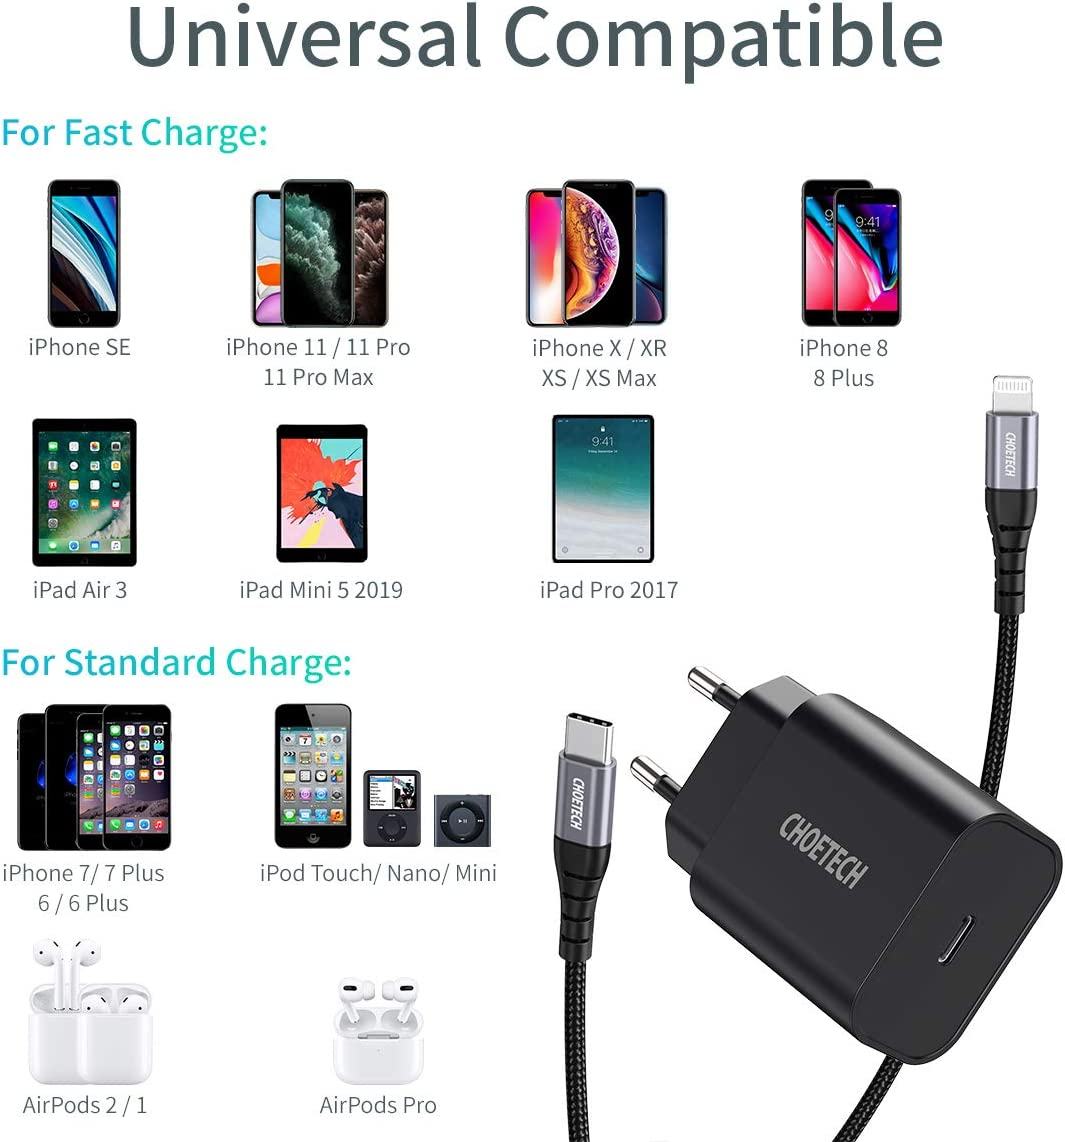 CHOETECH Snelle iPhone Oplader, PD 18 W USB C Oplader met